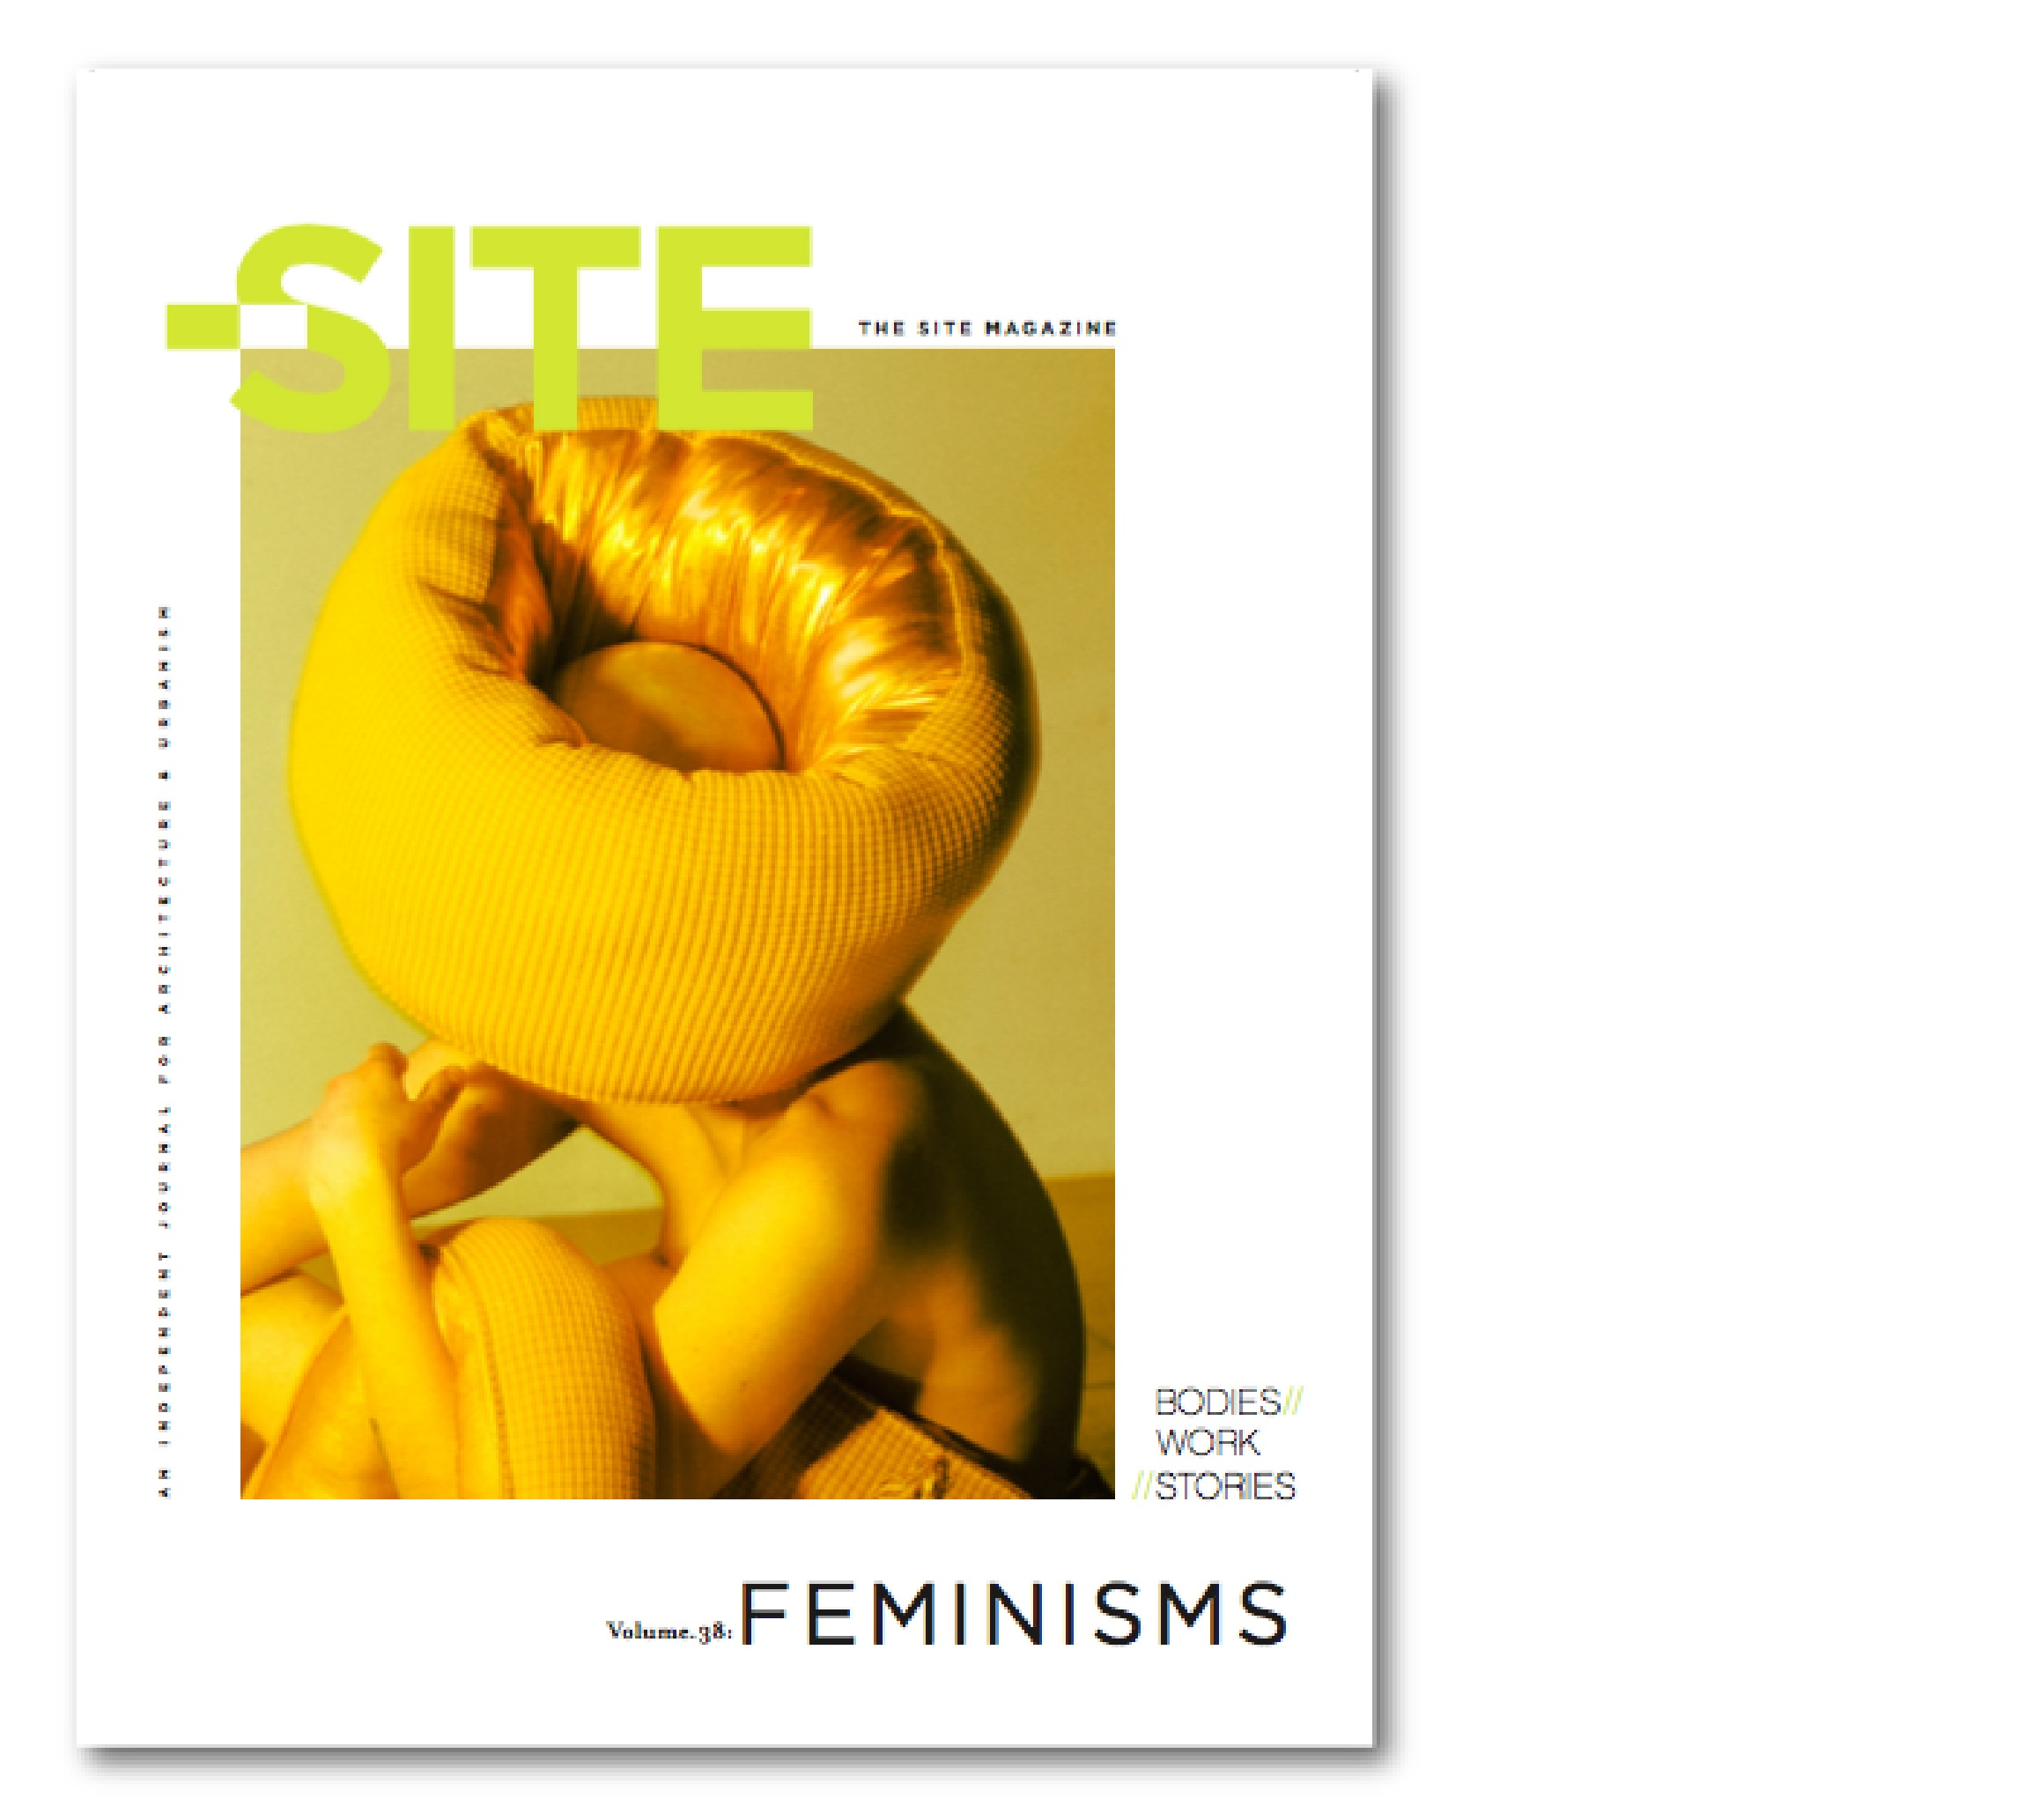 FEMINISMS+COVER+IMAGE-06.jpg